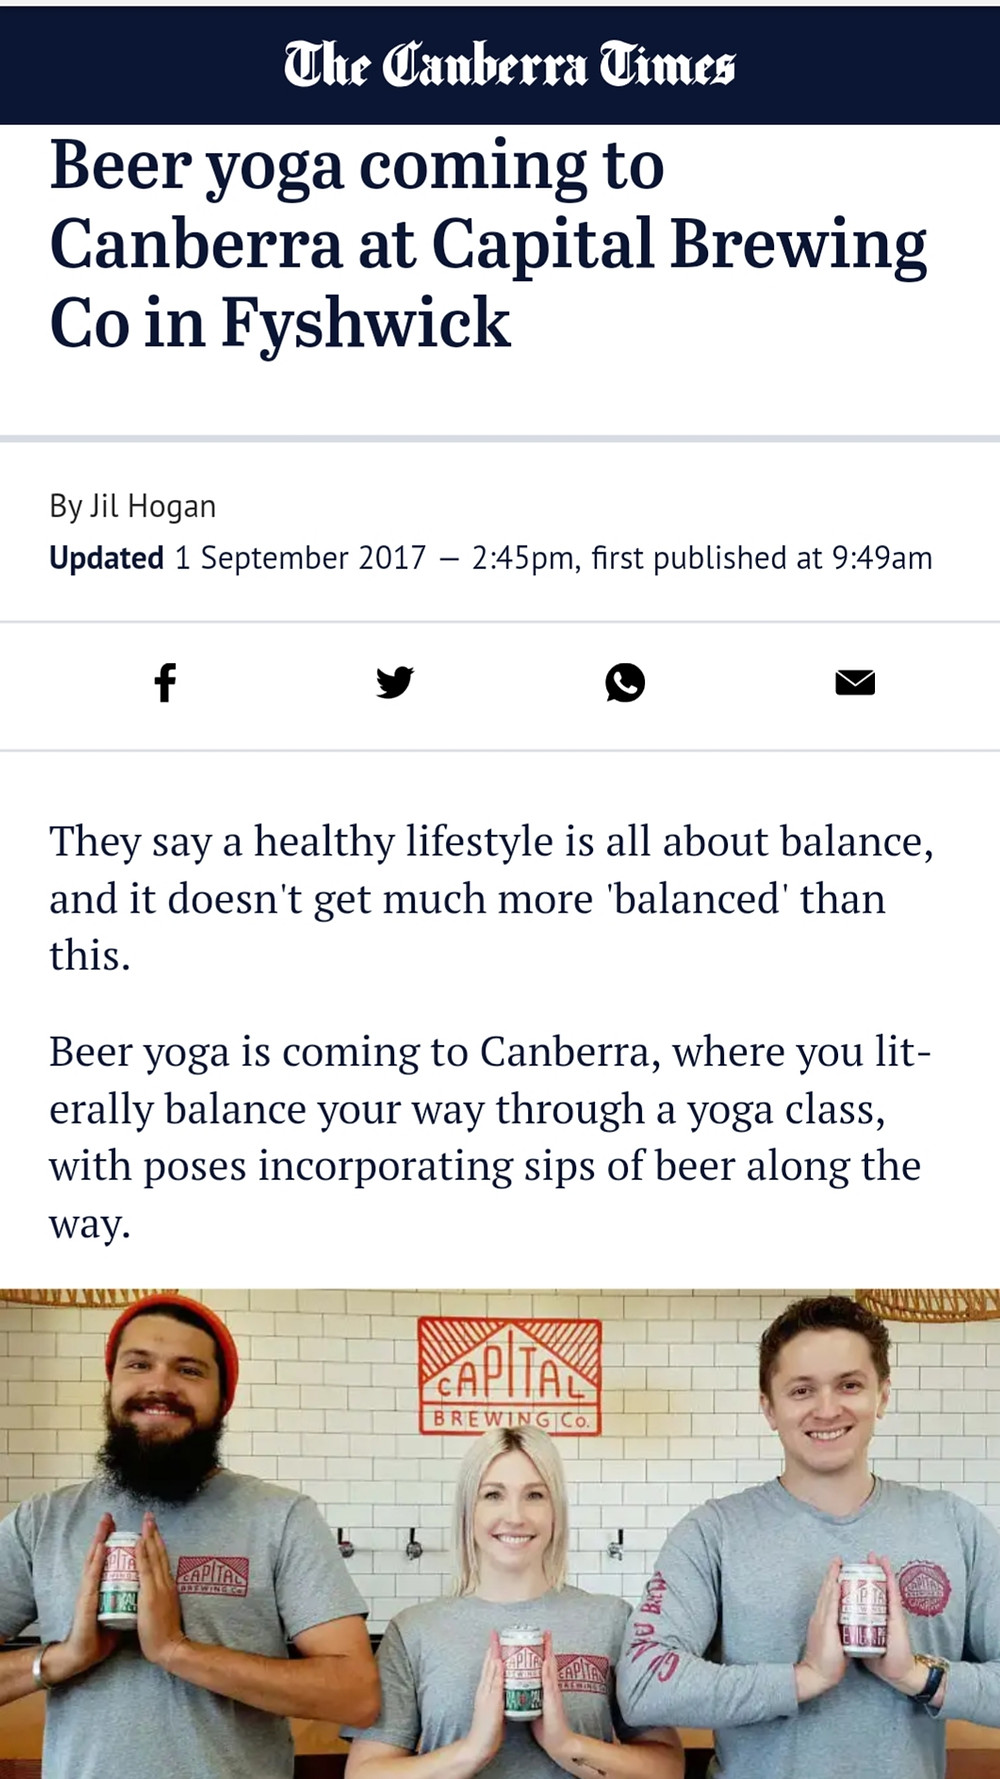 Beer Yoga is coming to Canberra